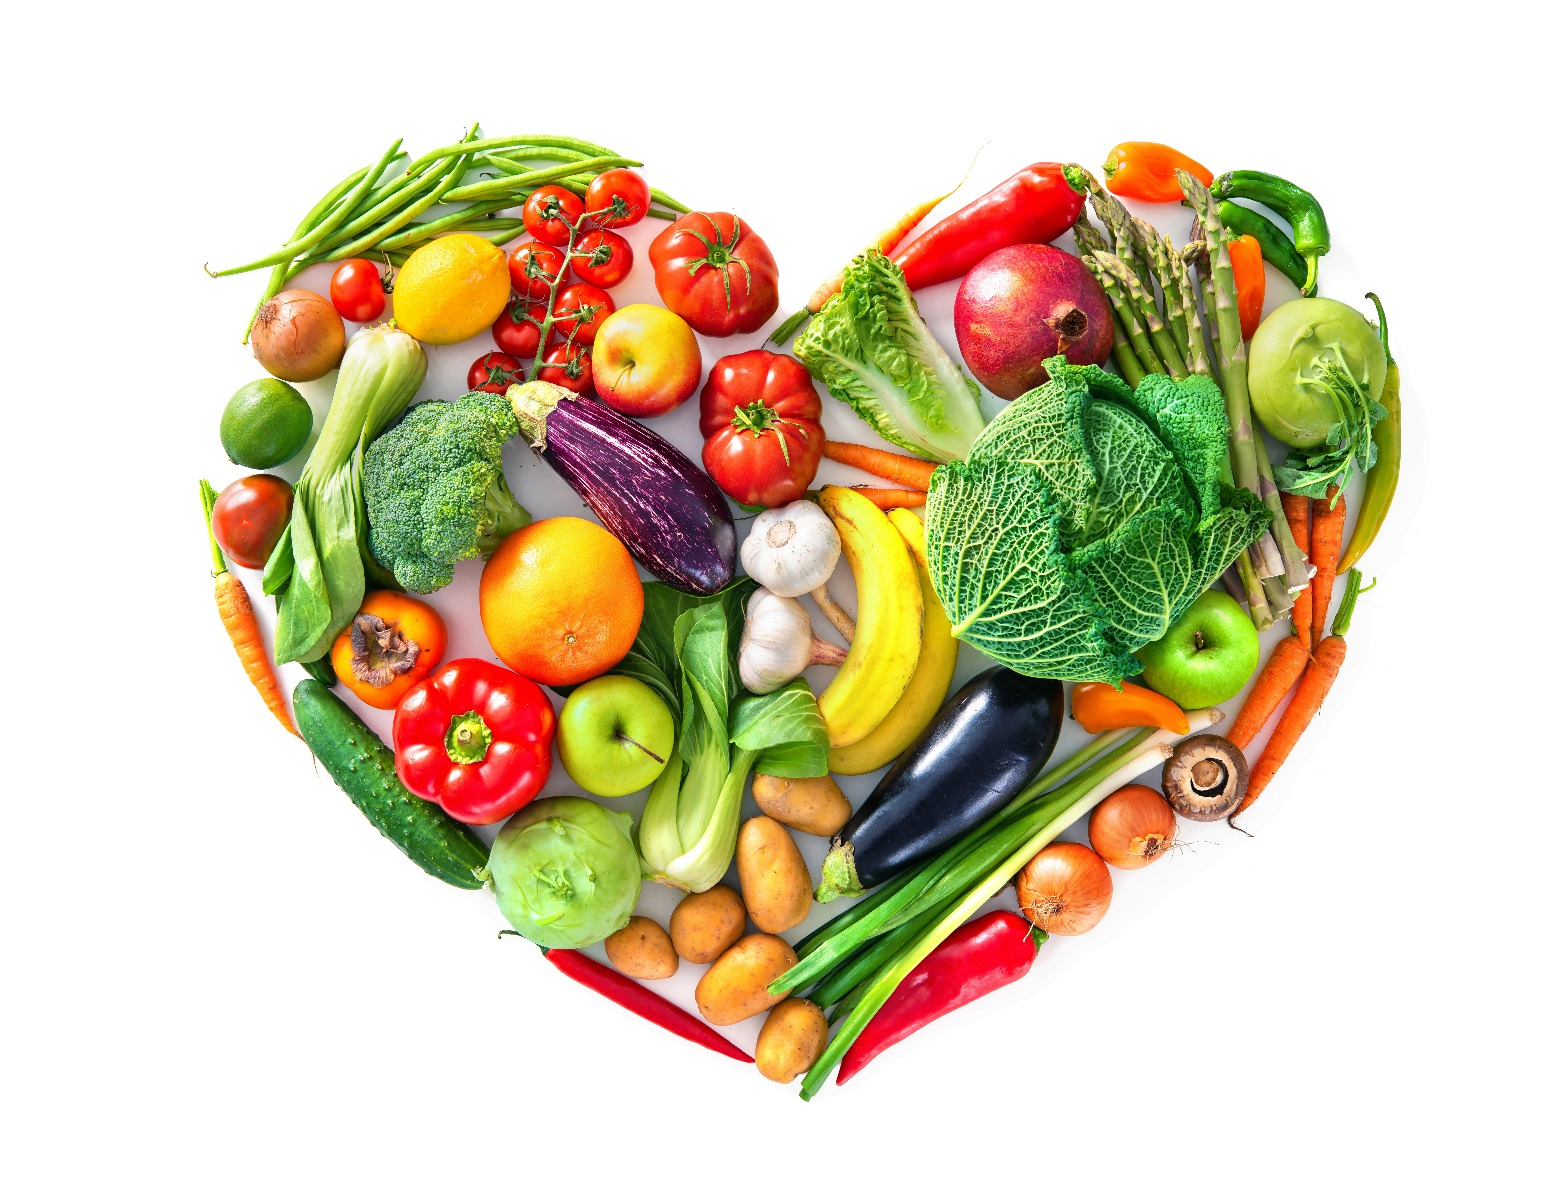 Colorful assortment of vegetables in the shape of a heart against a white background